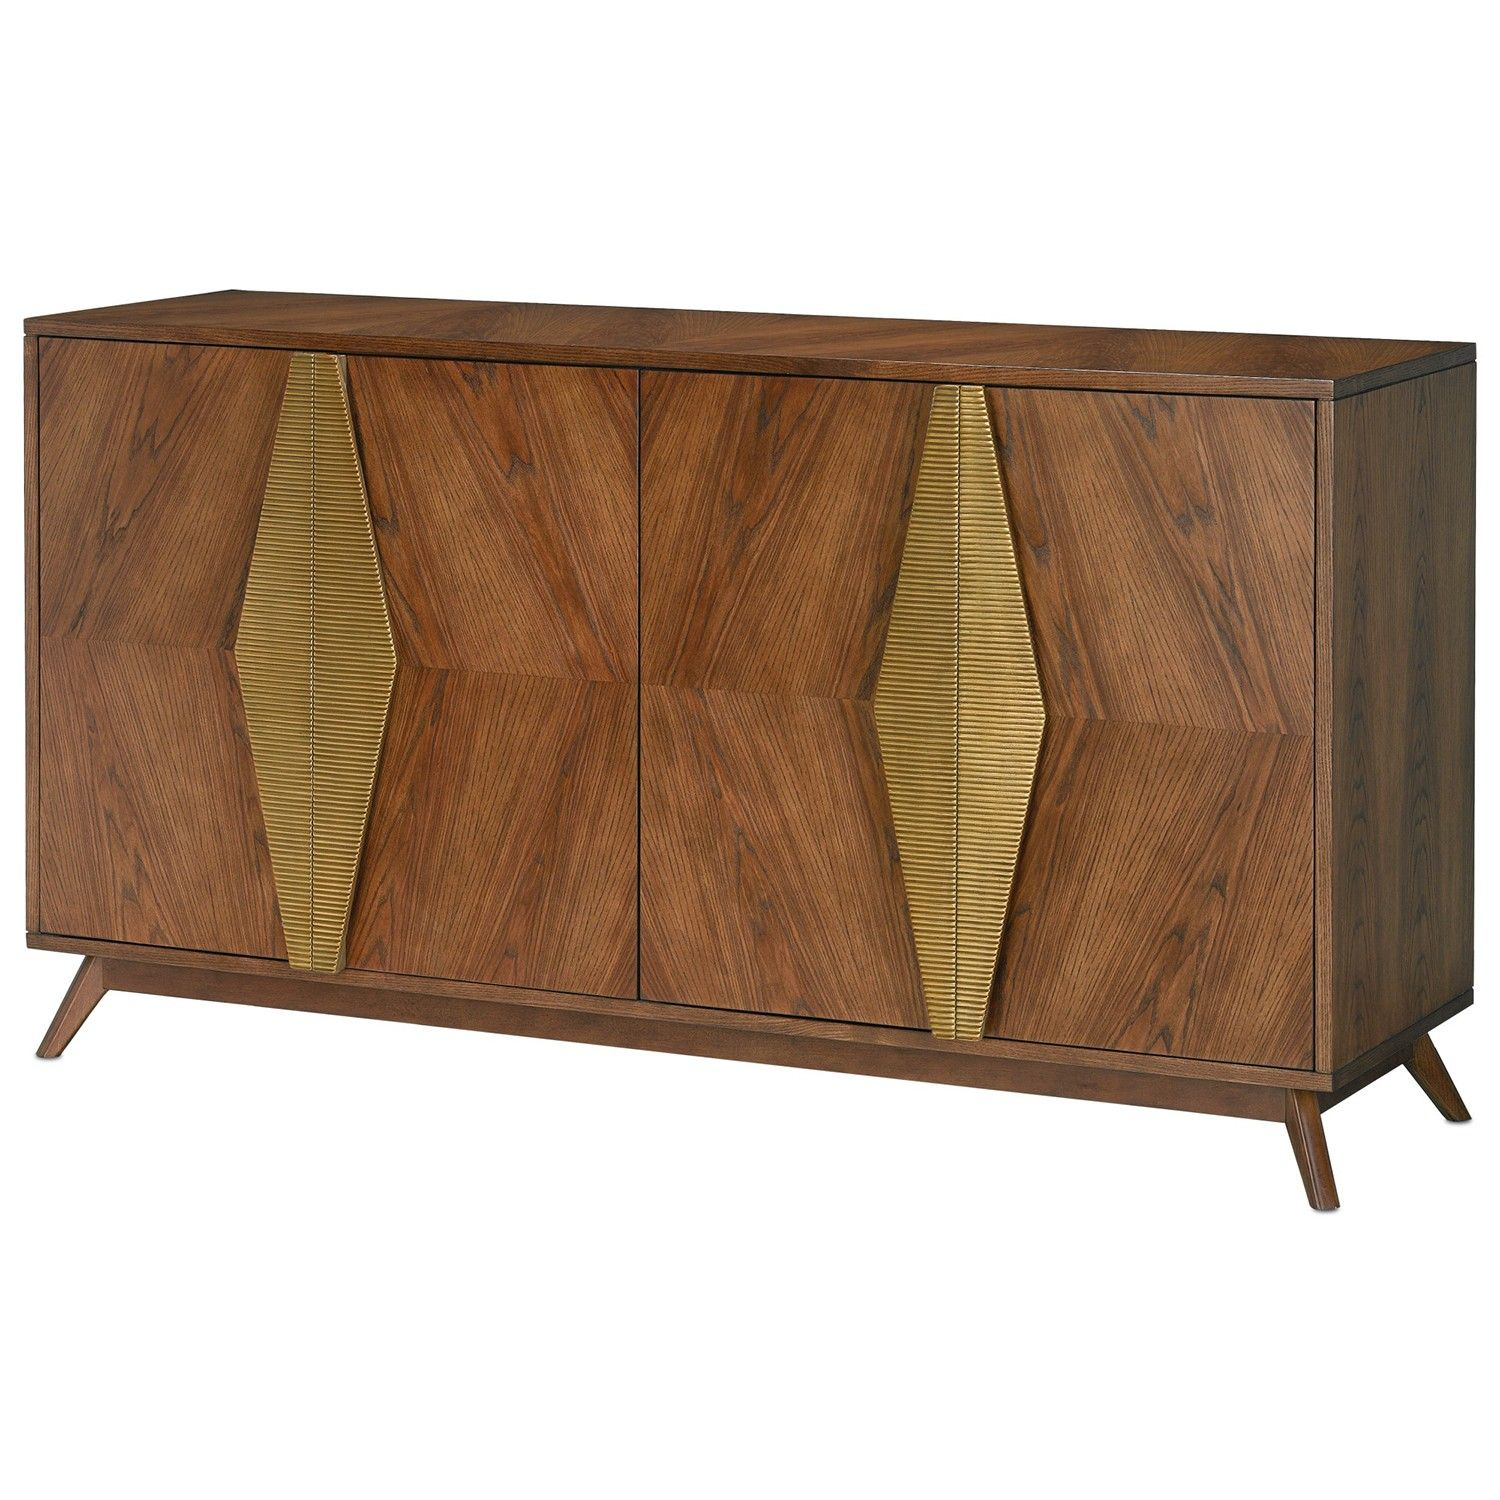 Currey And Company Arren Credenza | Glenda's Master Regarding Armelle Sideboards (Image 10 of 30)